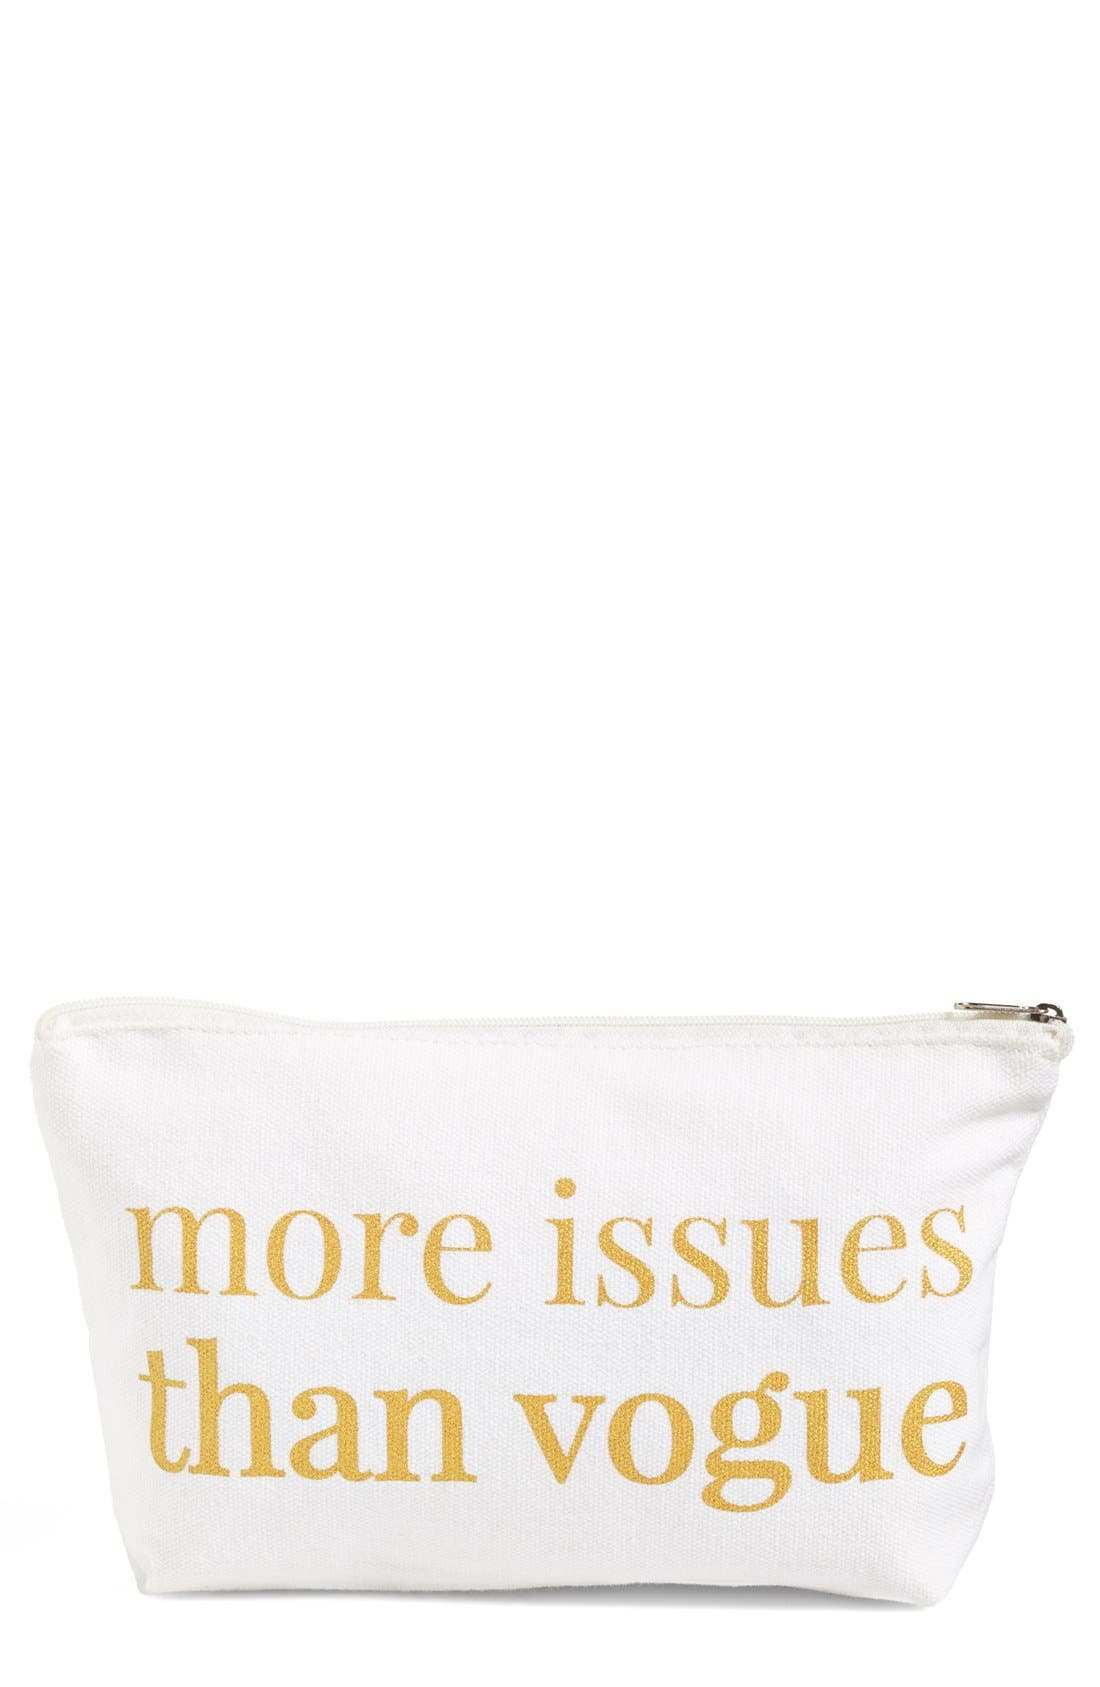 Main Image - Levtex 'More Issues than Vogue' Zip Pouch